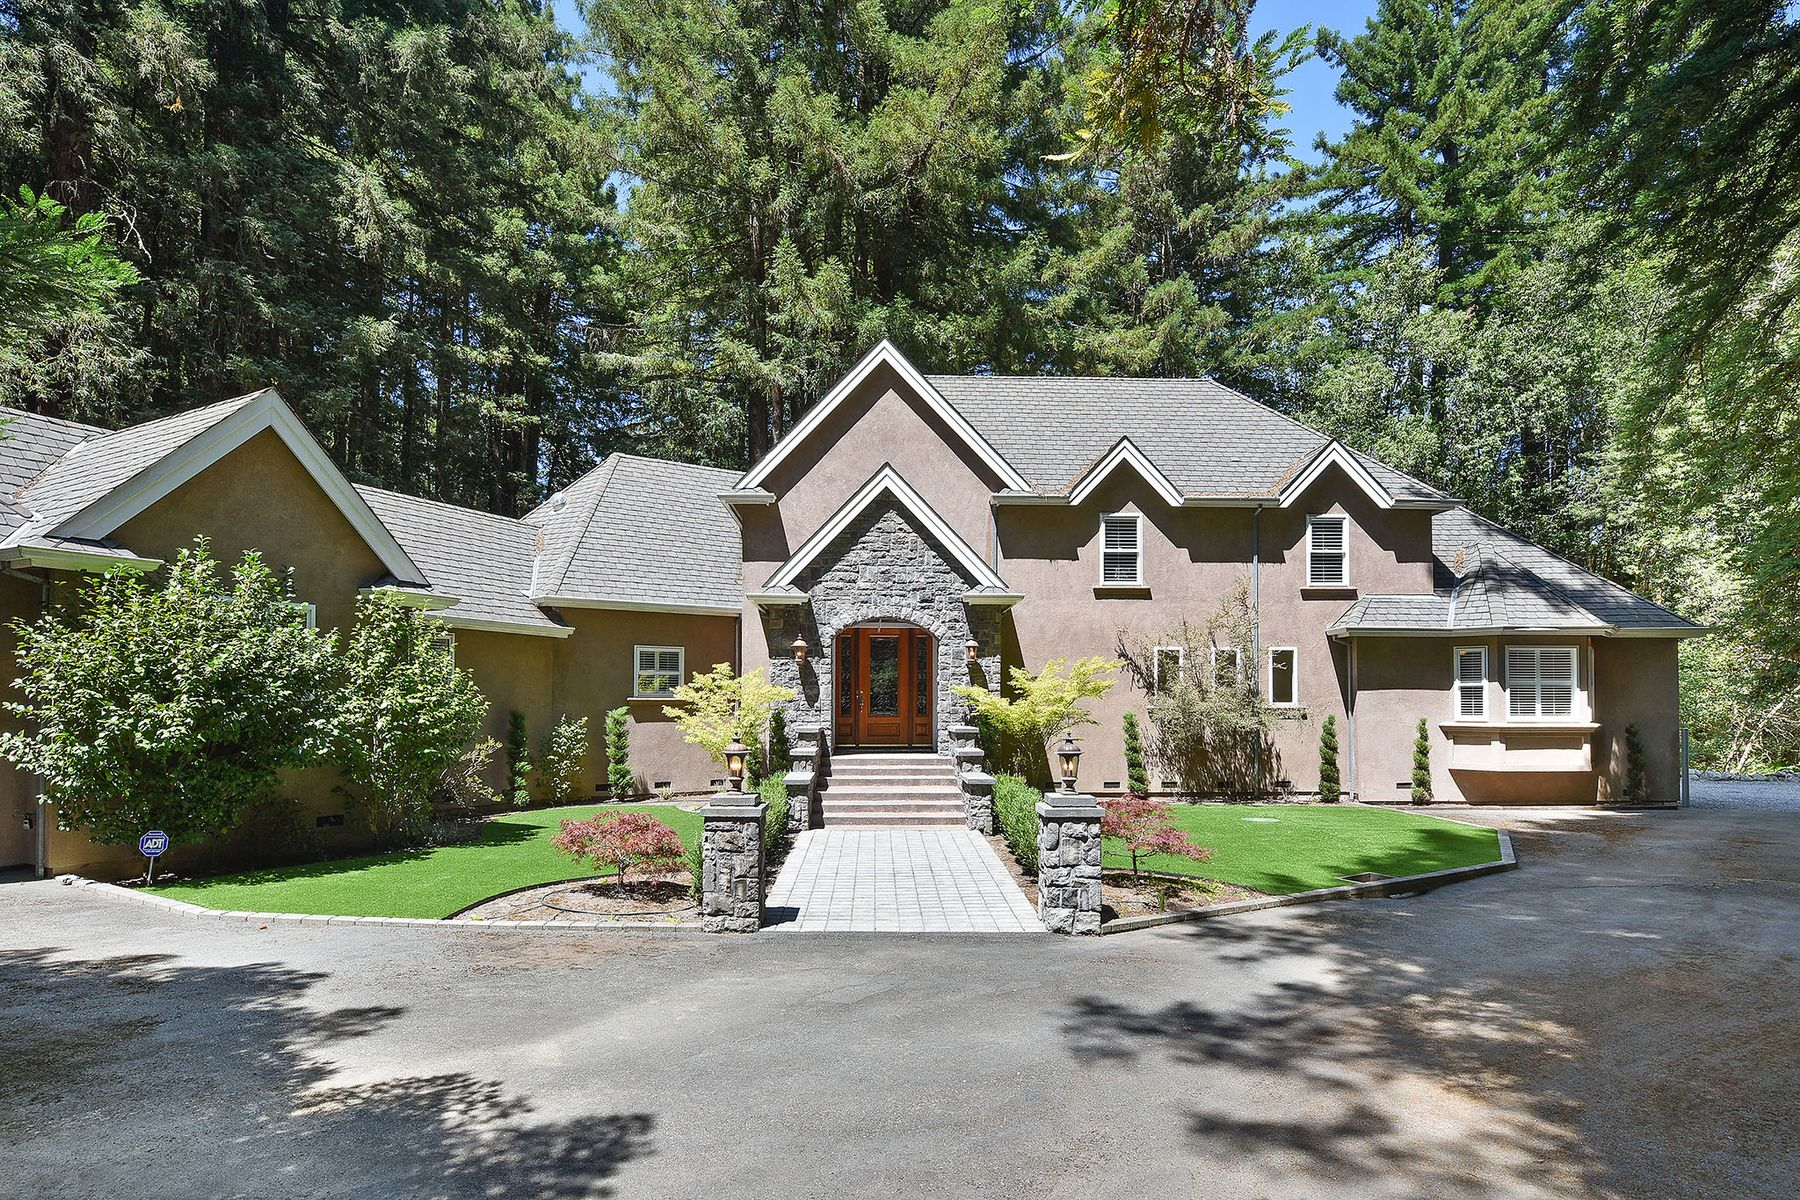 Single Family Homes for Sale at Stunning West County Estate 711 & 705 Furlong Rd Sebastopol, California 95472 United States